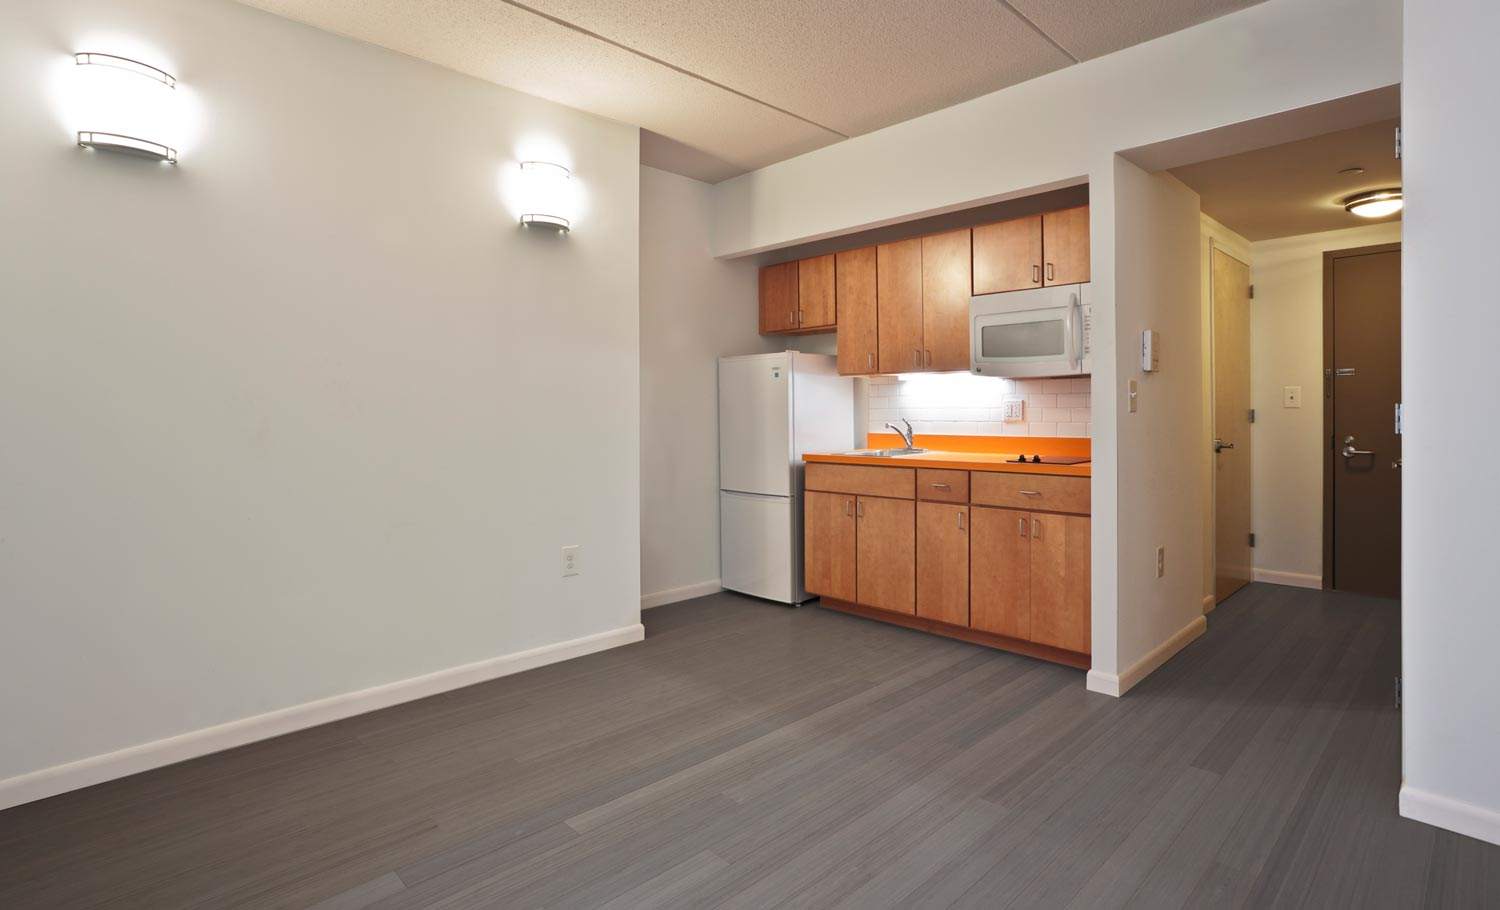 The residential efficiency units at Mosholu Gardens are equipped with private kitchens and baths.